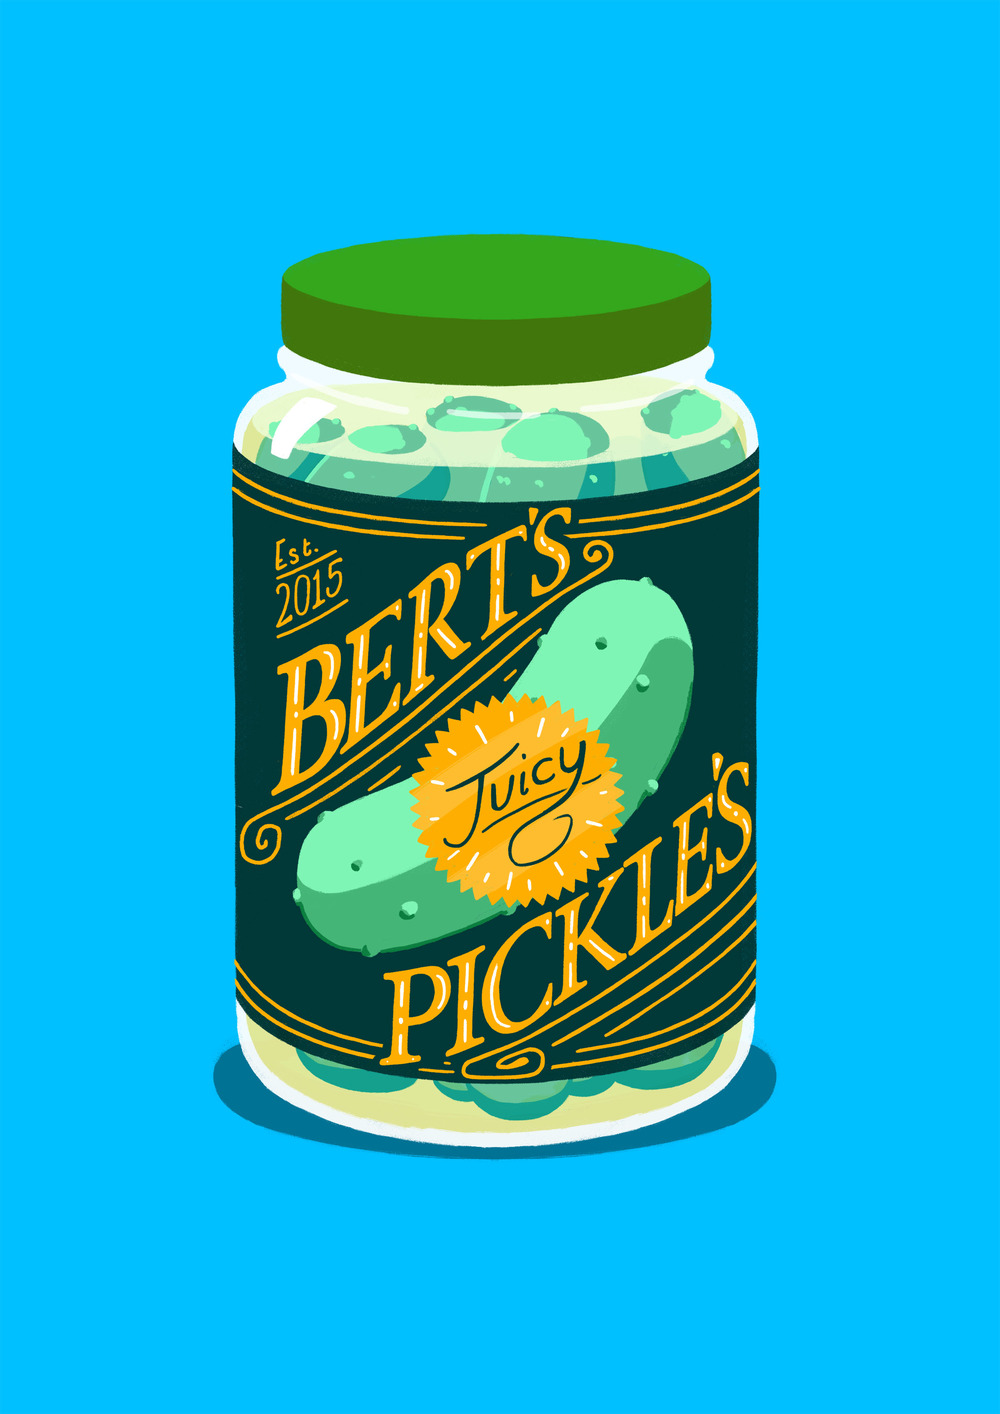 Bert's Juicy Pickles!